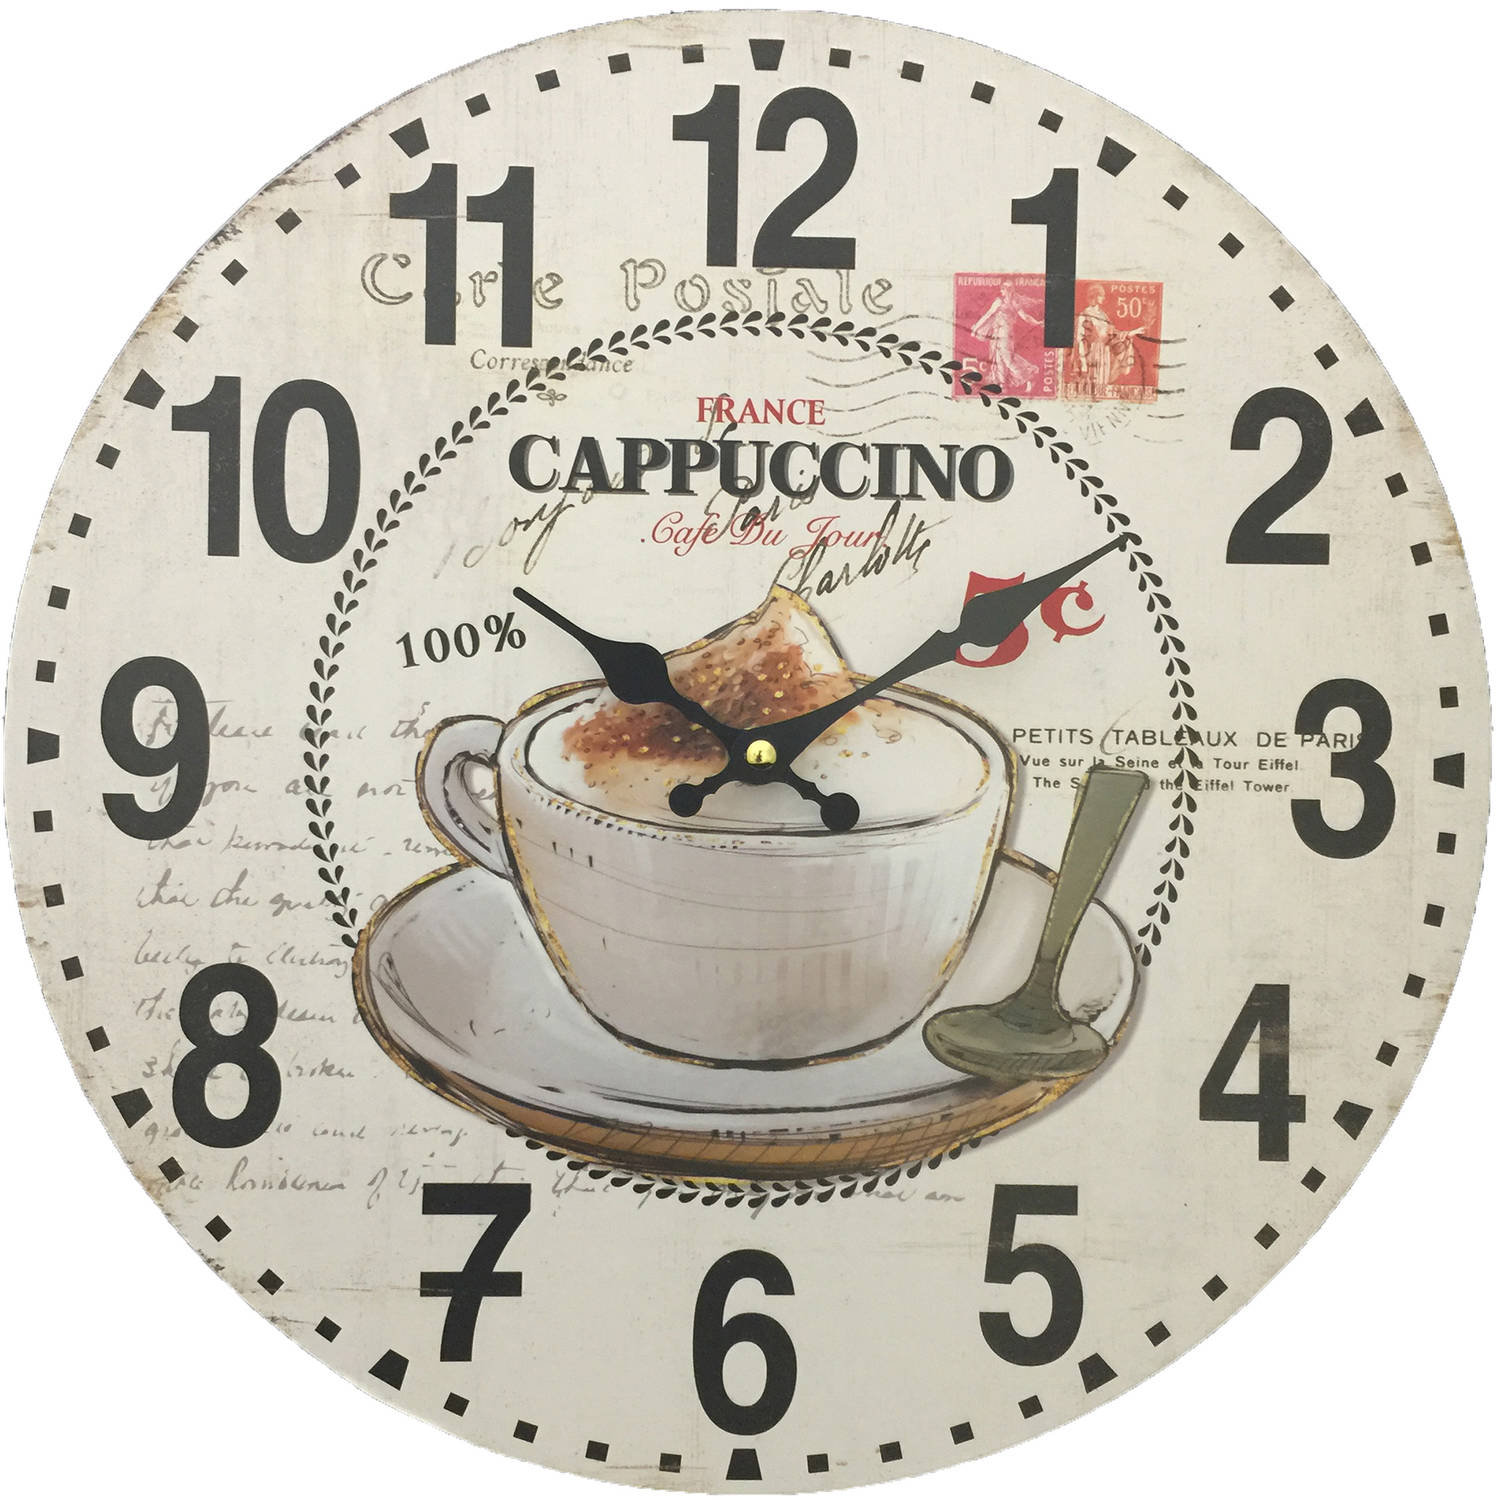 "Cappuccino and Coffee Cup Wall Clock; 13.38"" diagonal in clock face size; Great for shop, dorm, kitchen"